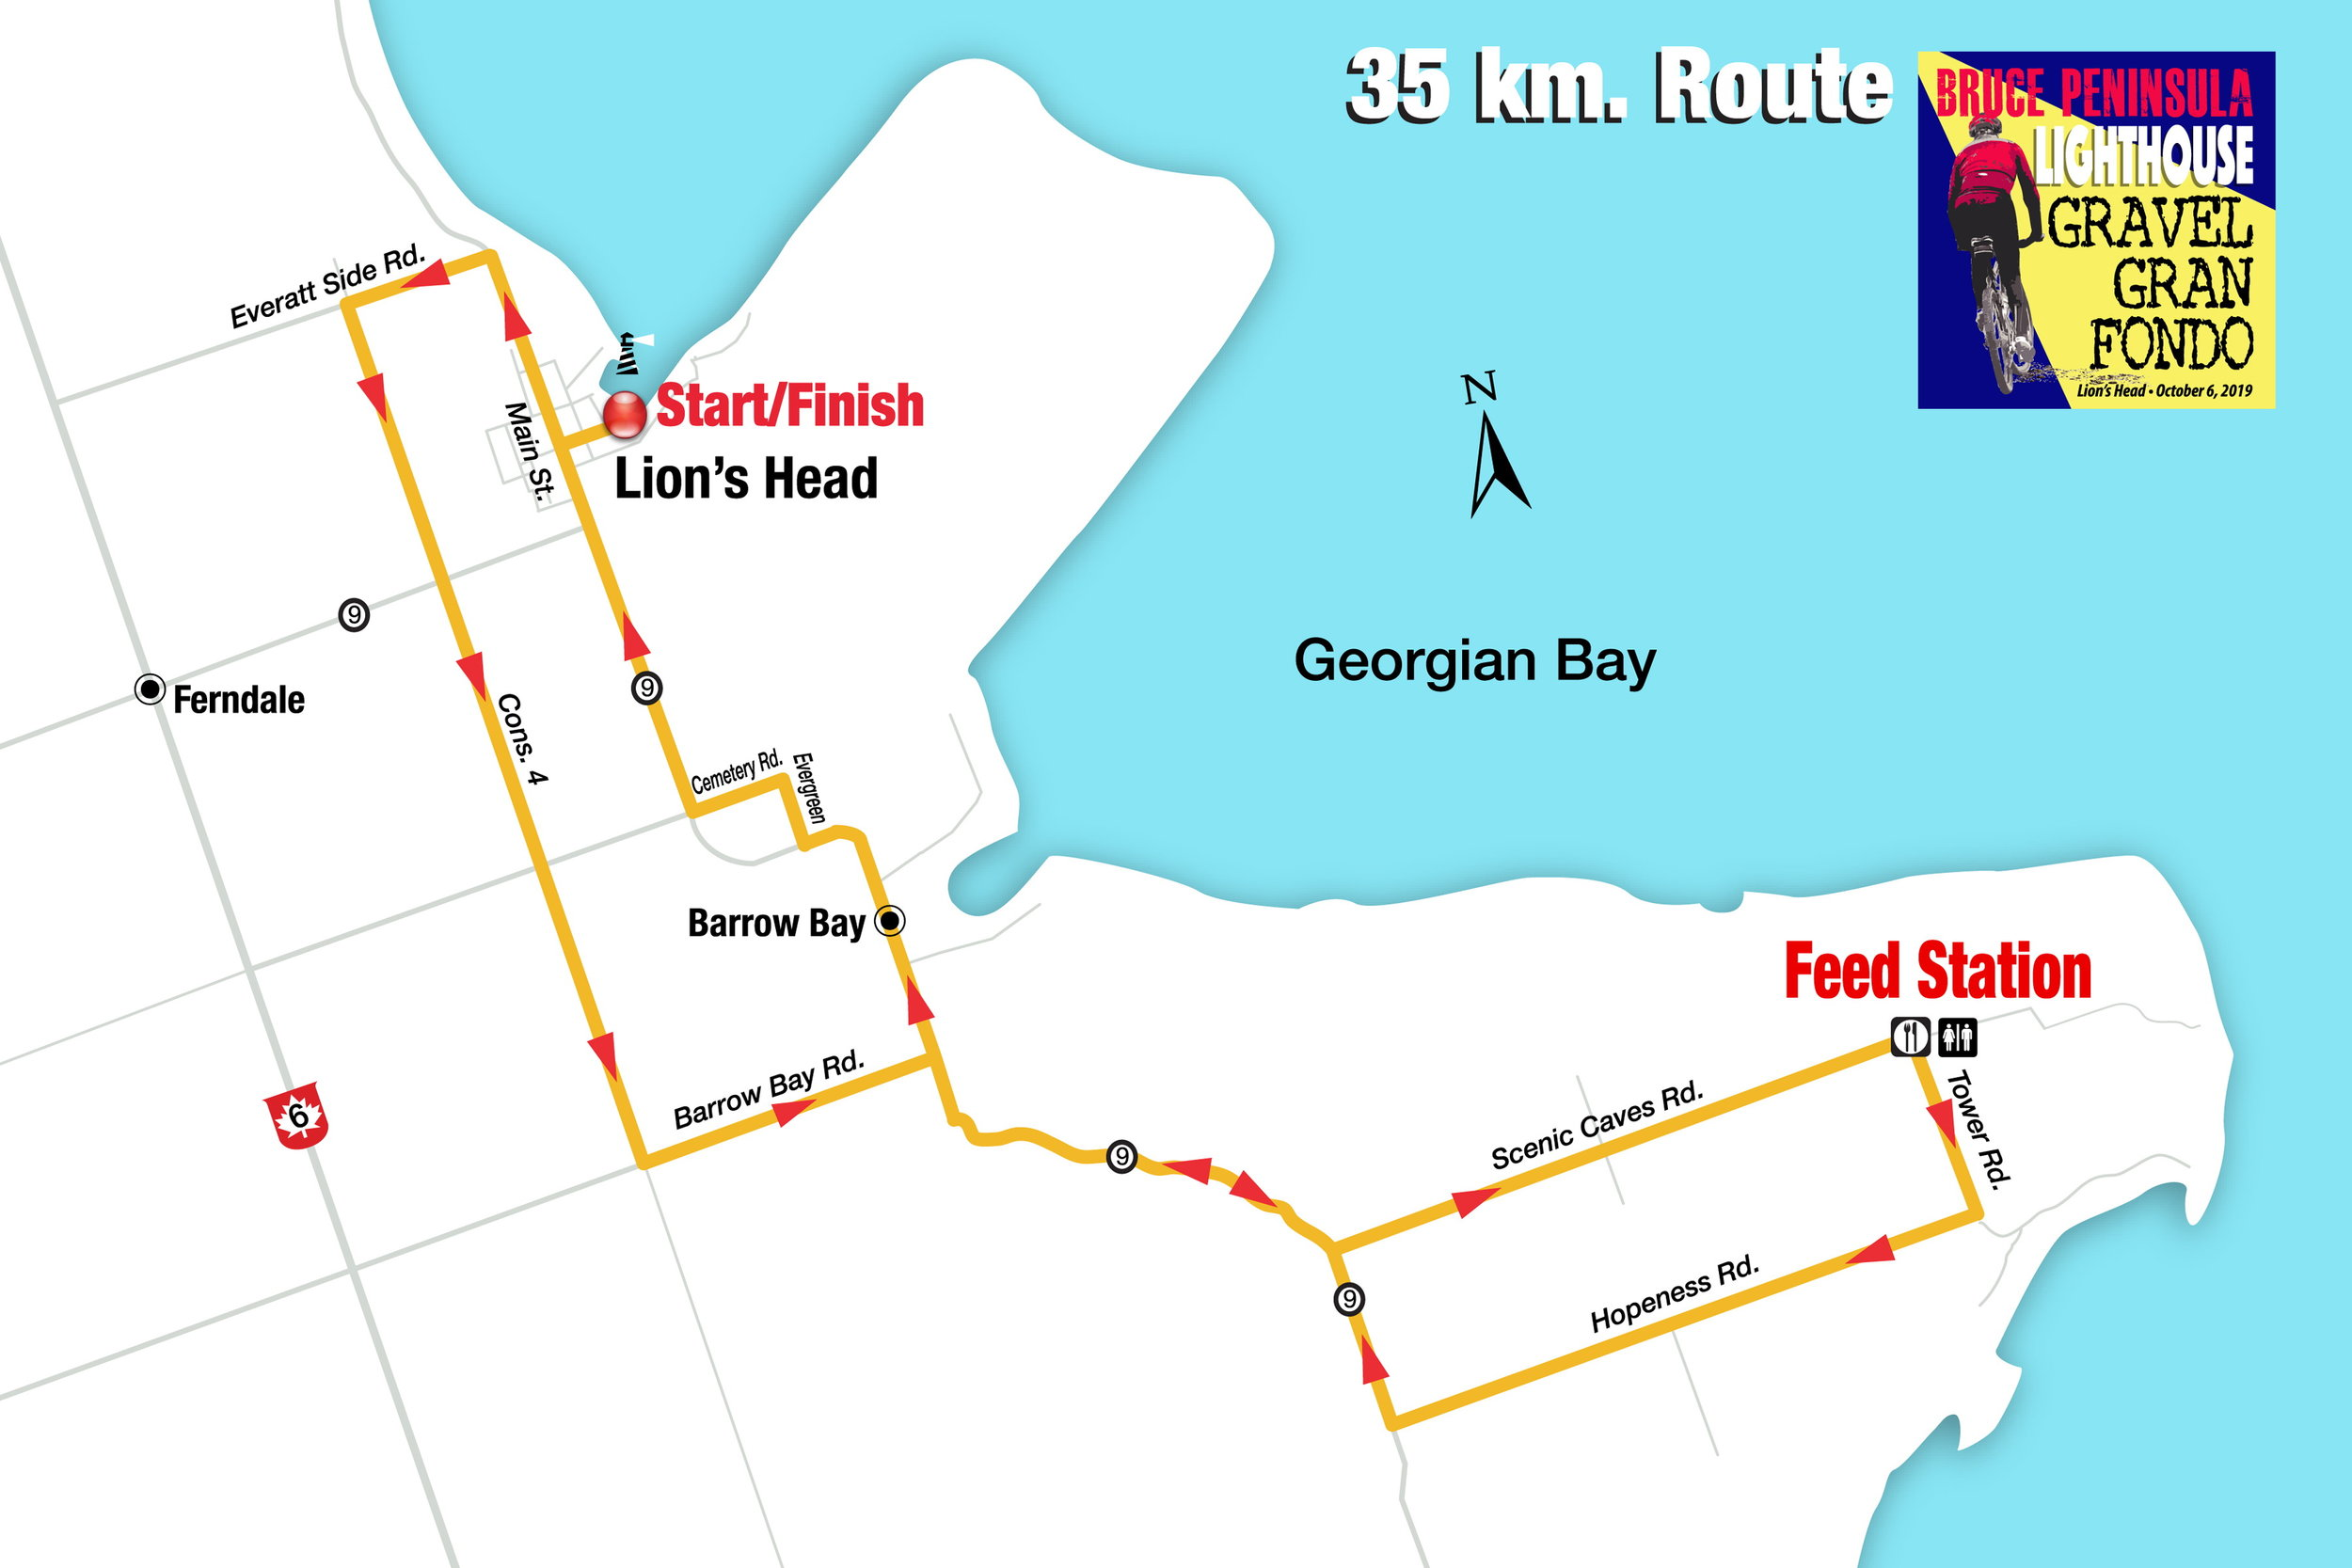 35 km route (click on map to enlarge)